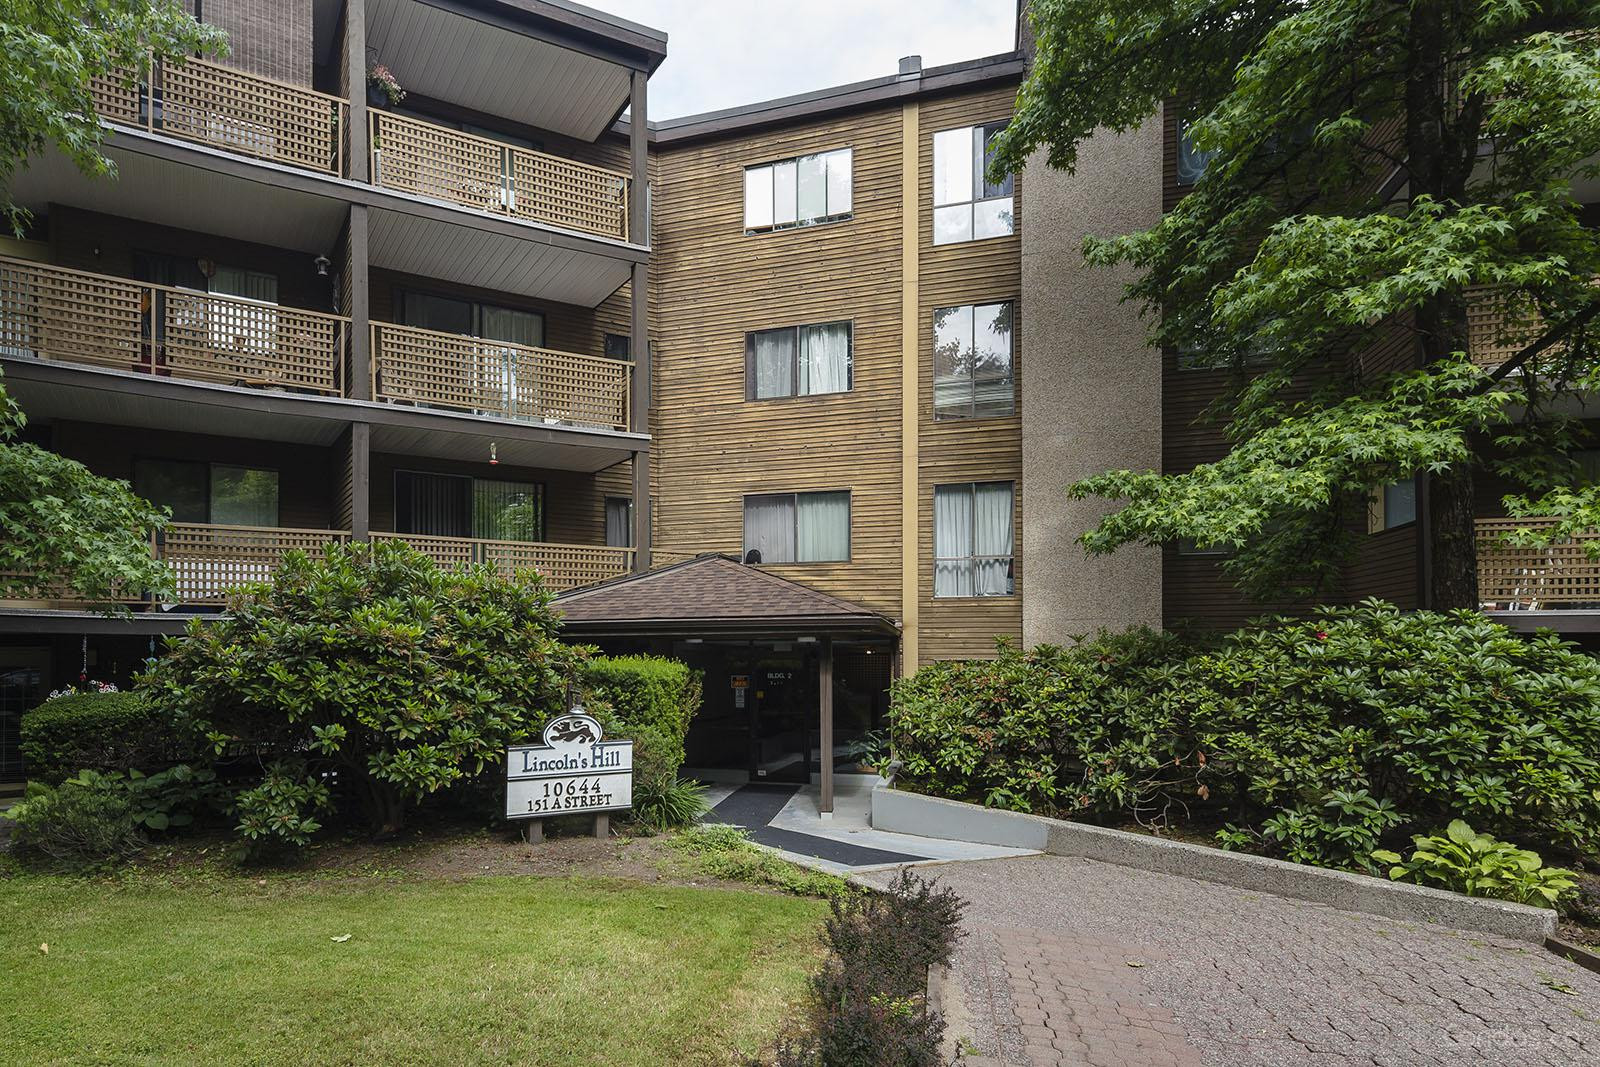 Lincoln's Hill at 10644 151a St, Surrey 1